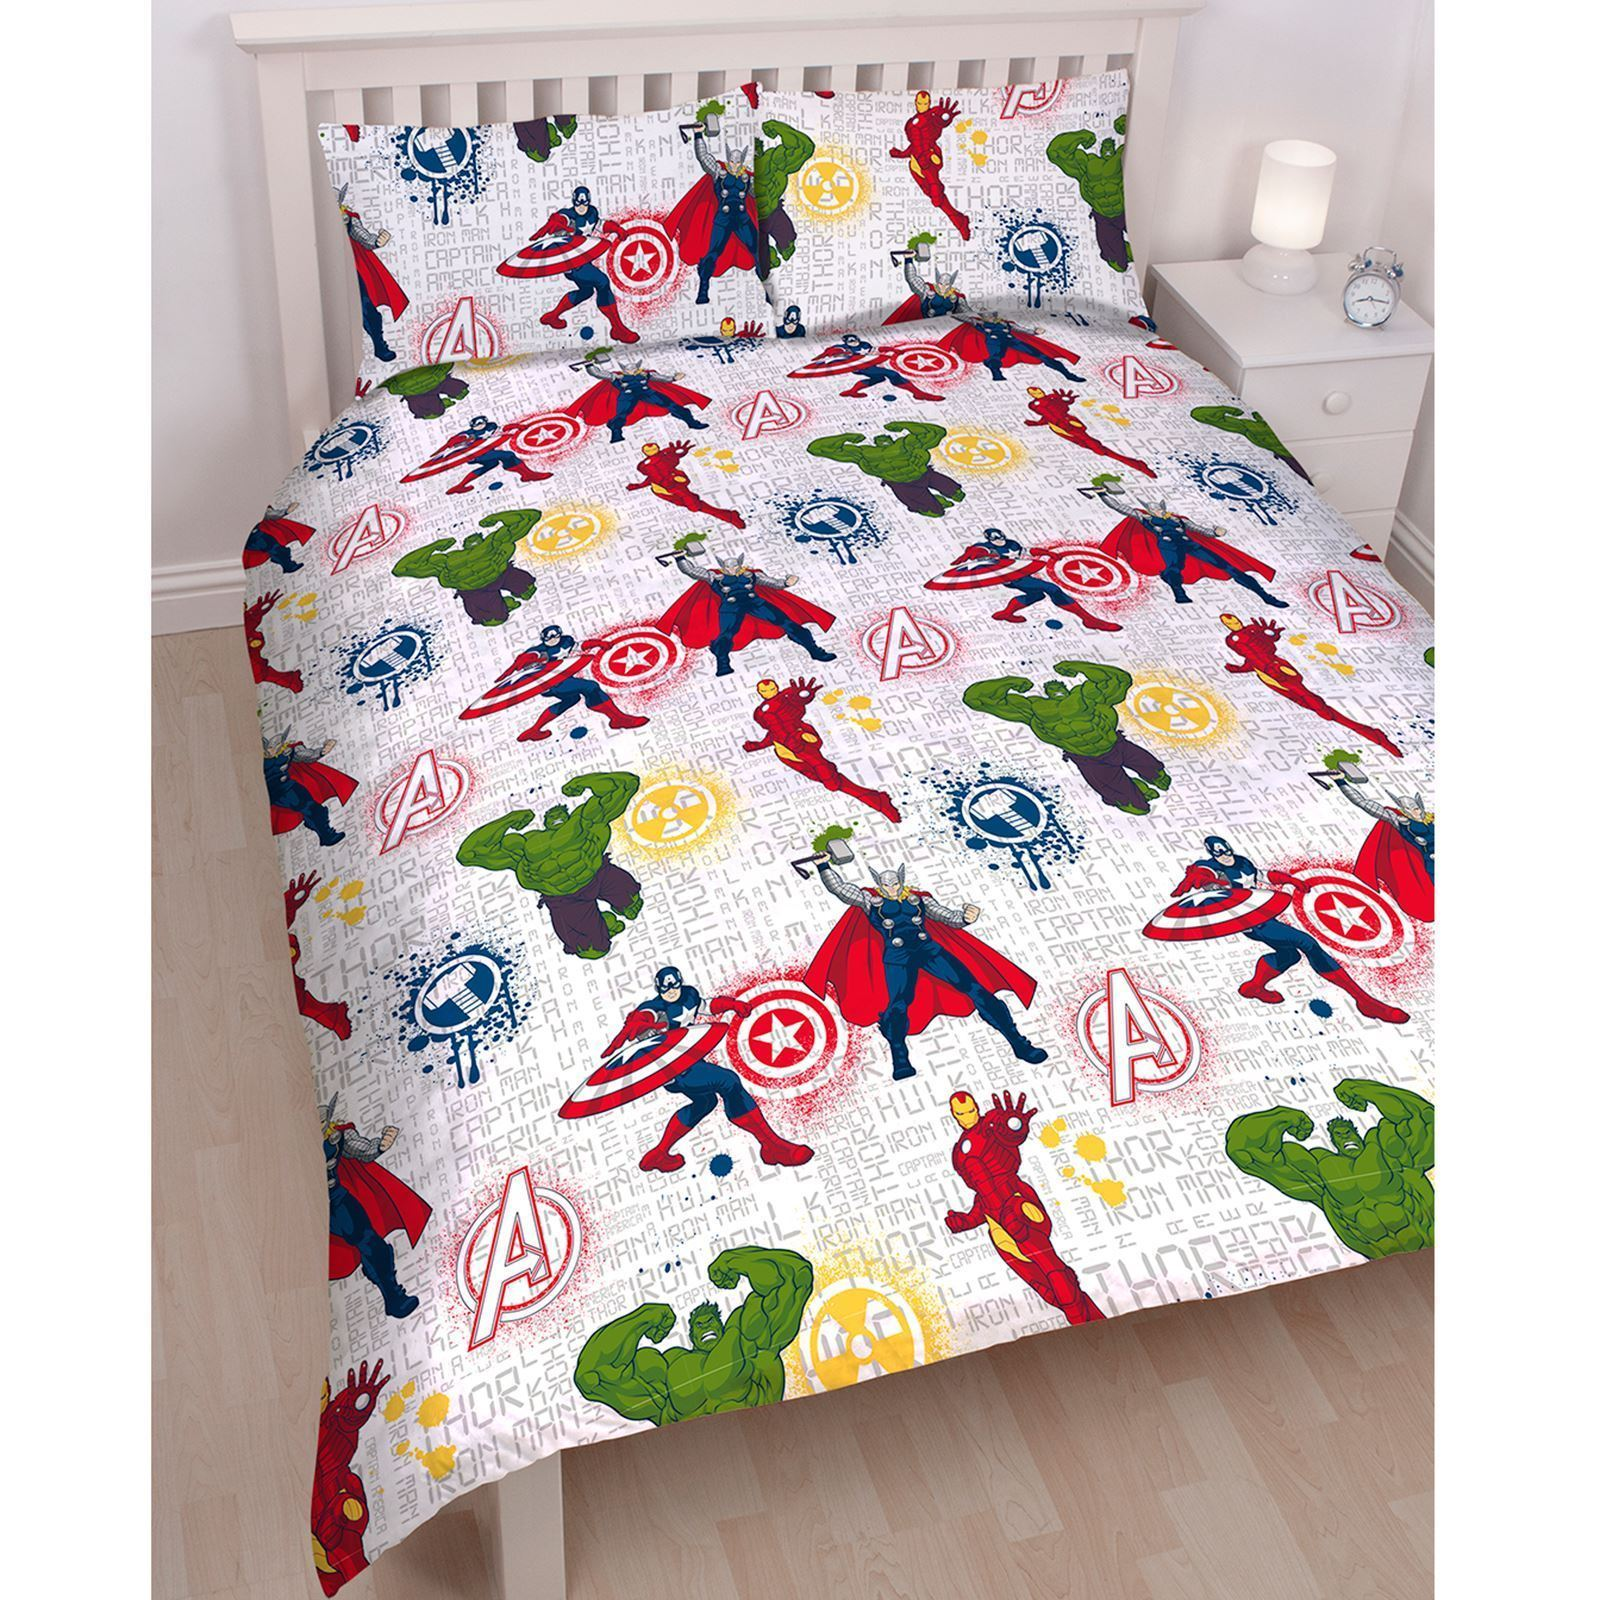 Official-Marvel-Comics-Avengers-Licensed-Duvet-Covers-Single-Double thumbnail 8